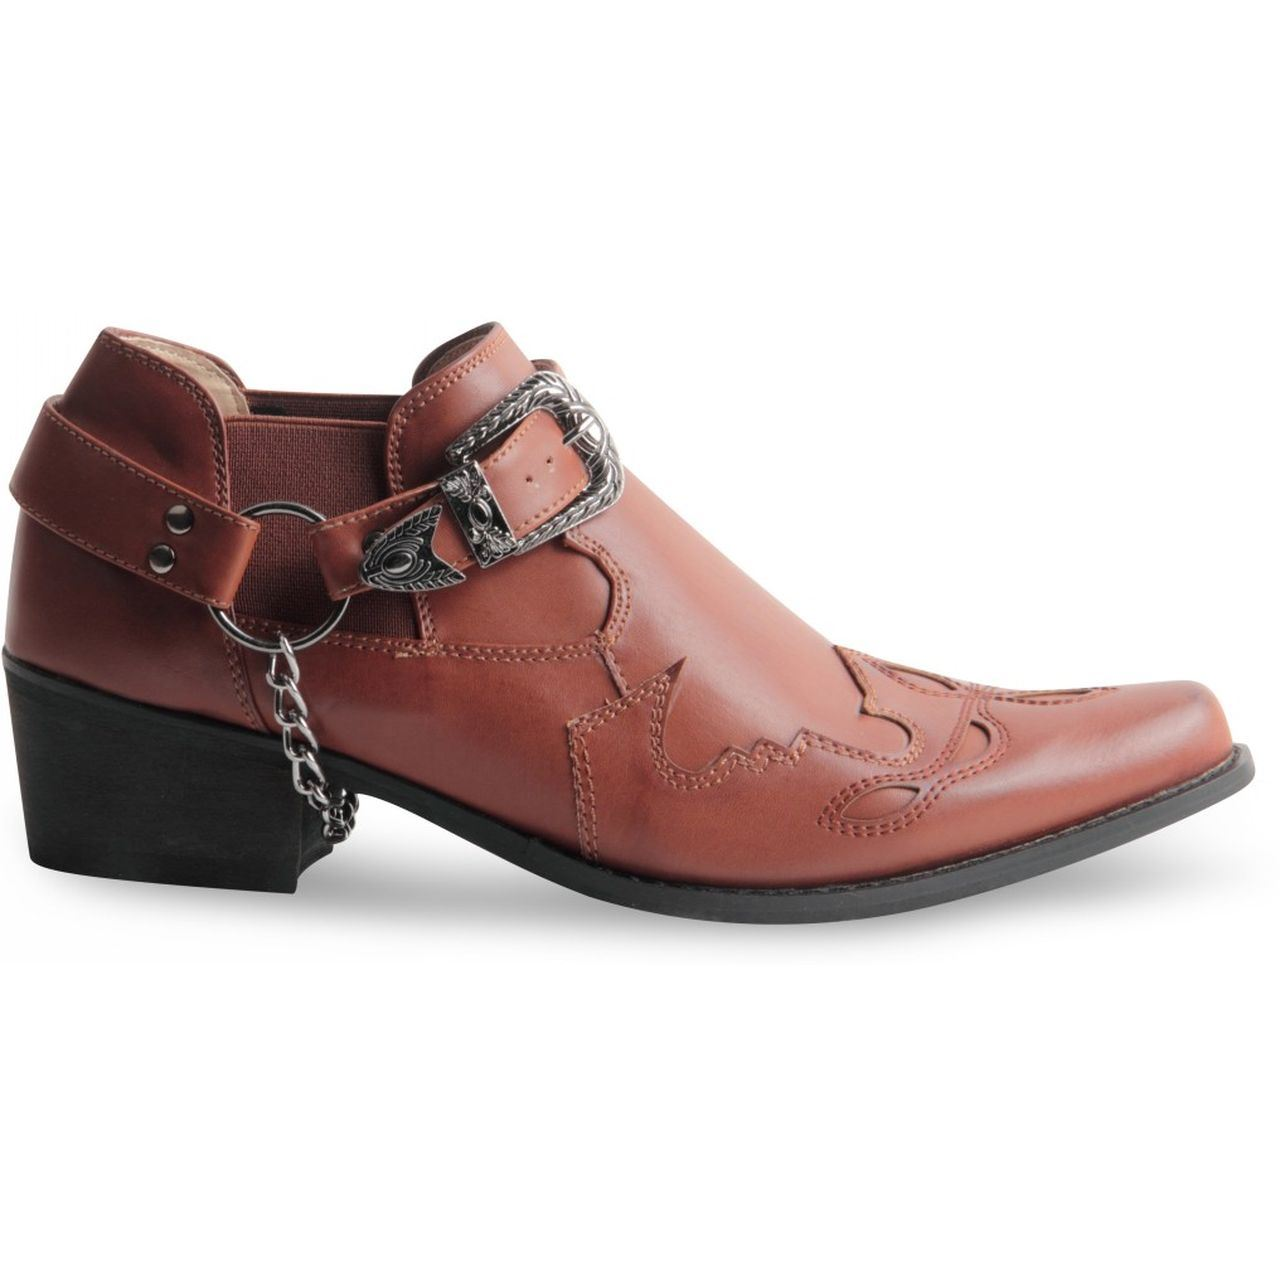 gents cowboy western harness ankle shoe boot